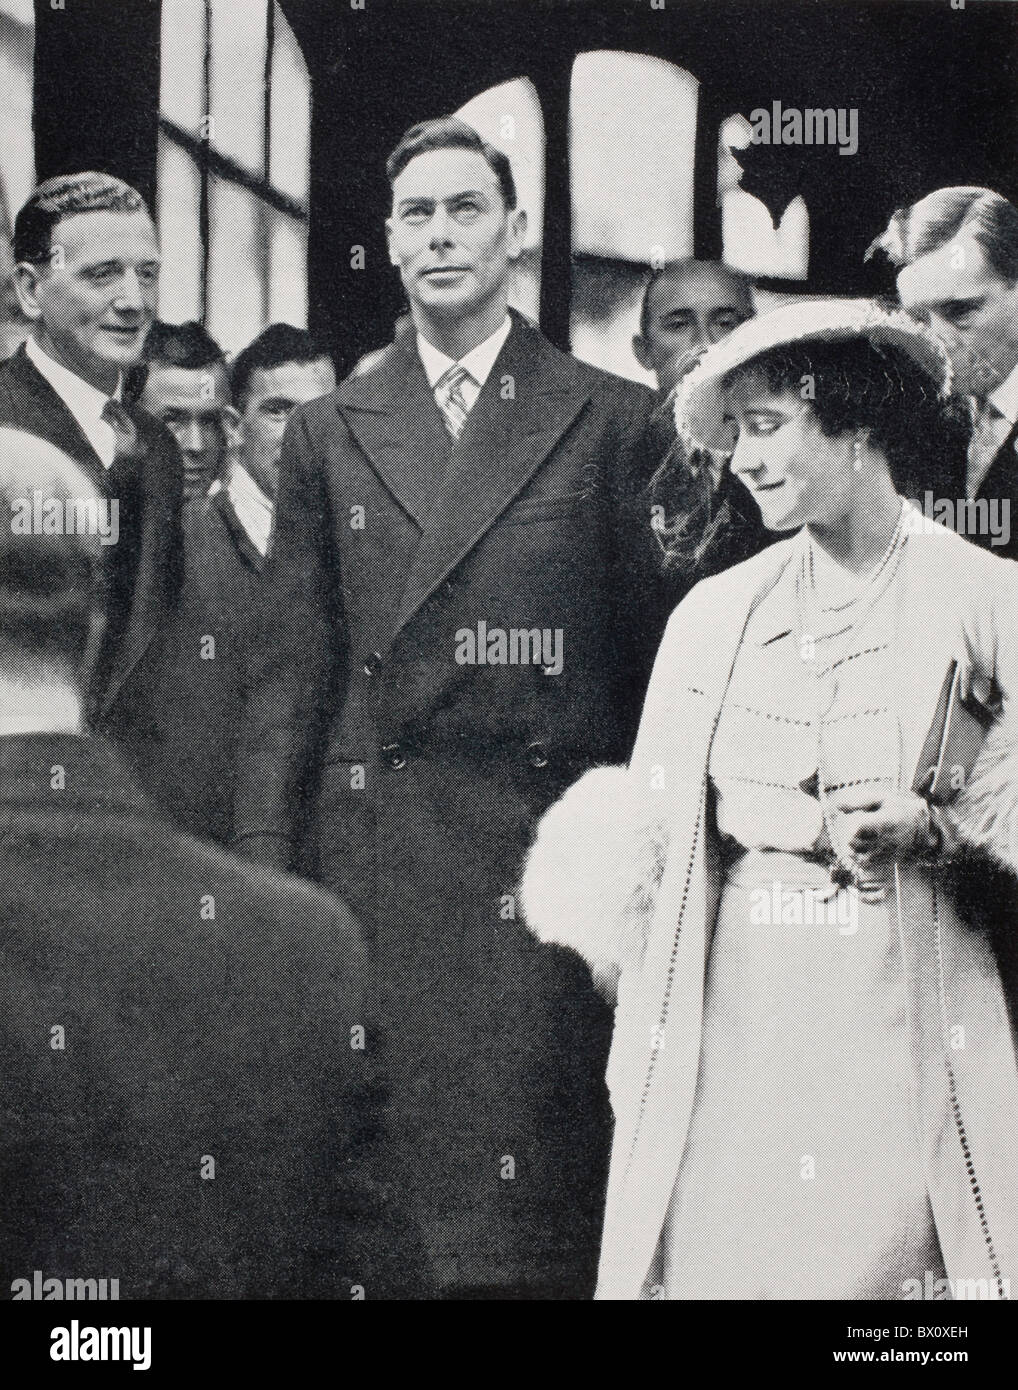 King George VI and Queen Elizabeth leaving Westminster Abbey after their coronation rehearsal in 1937. Stock Photo